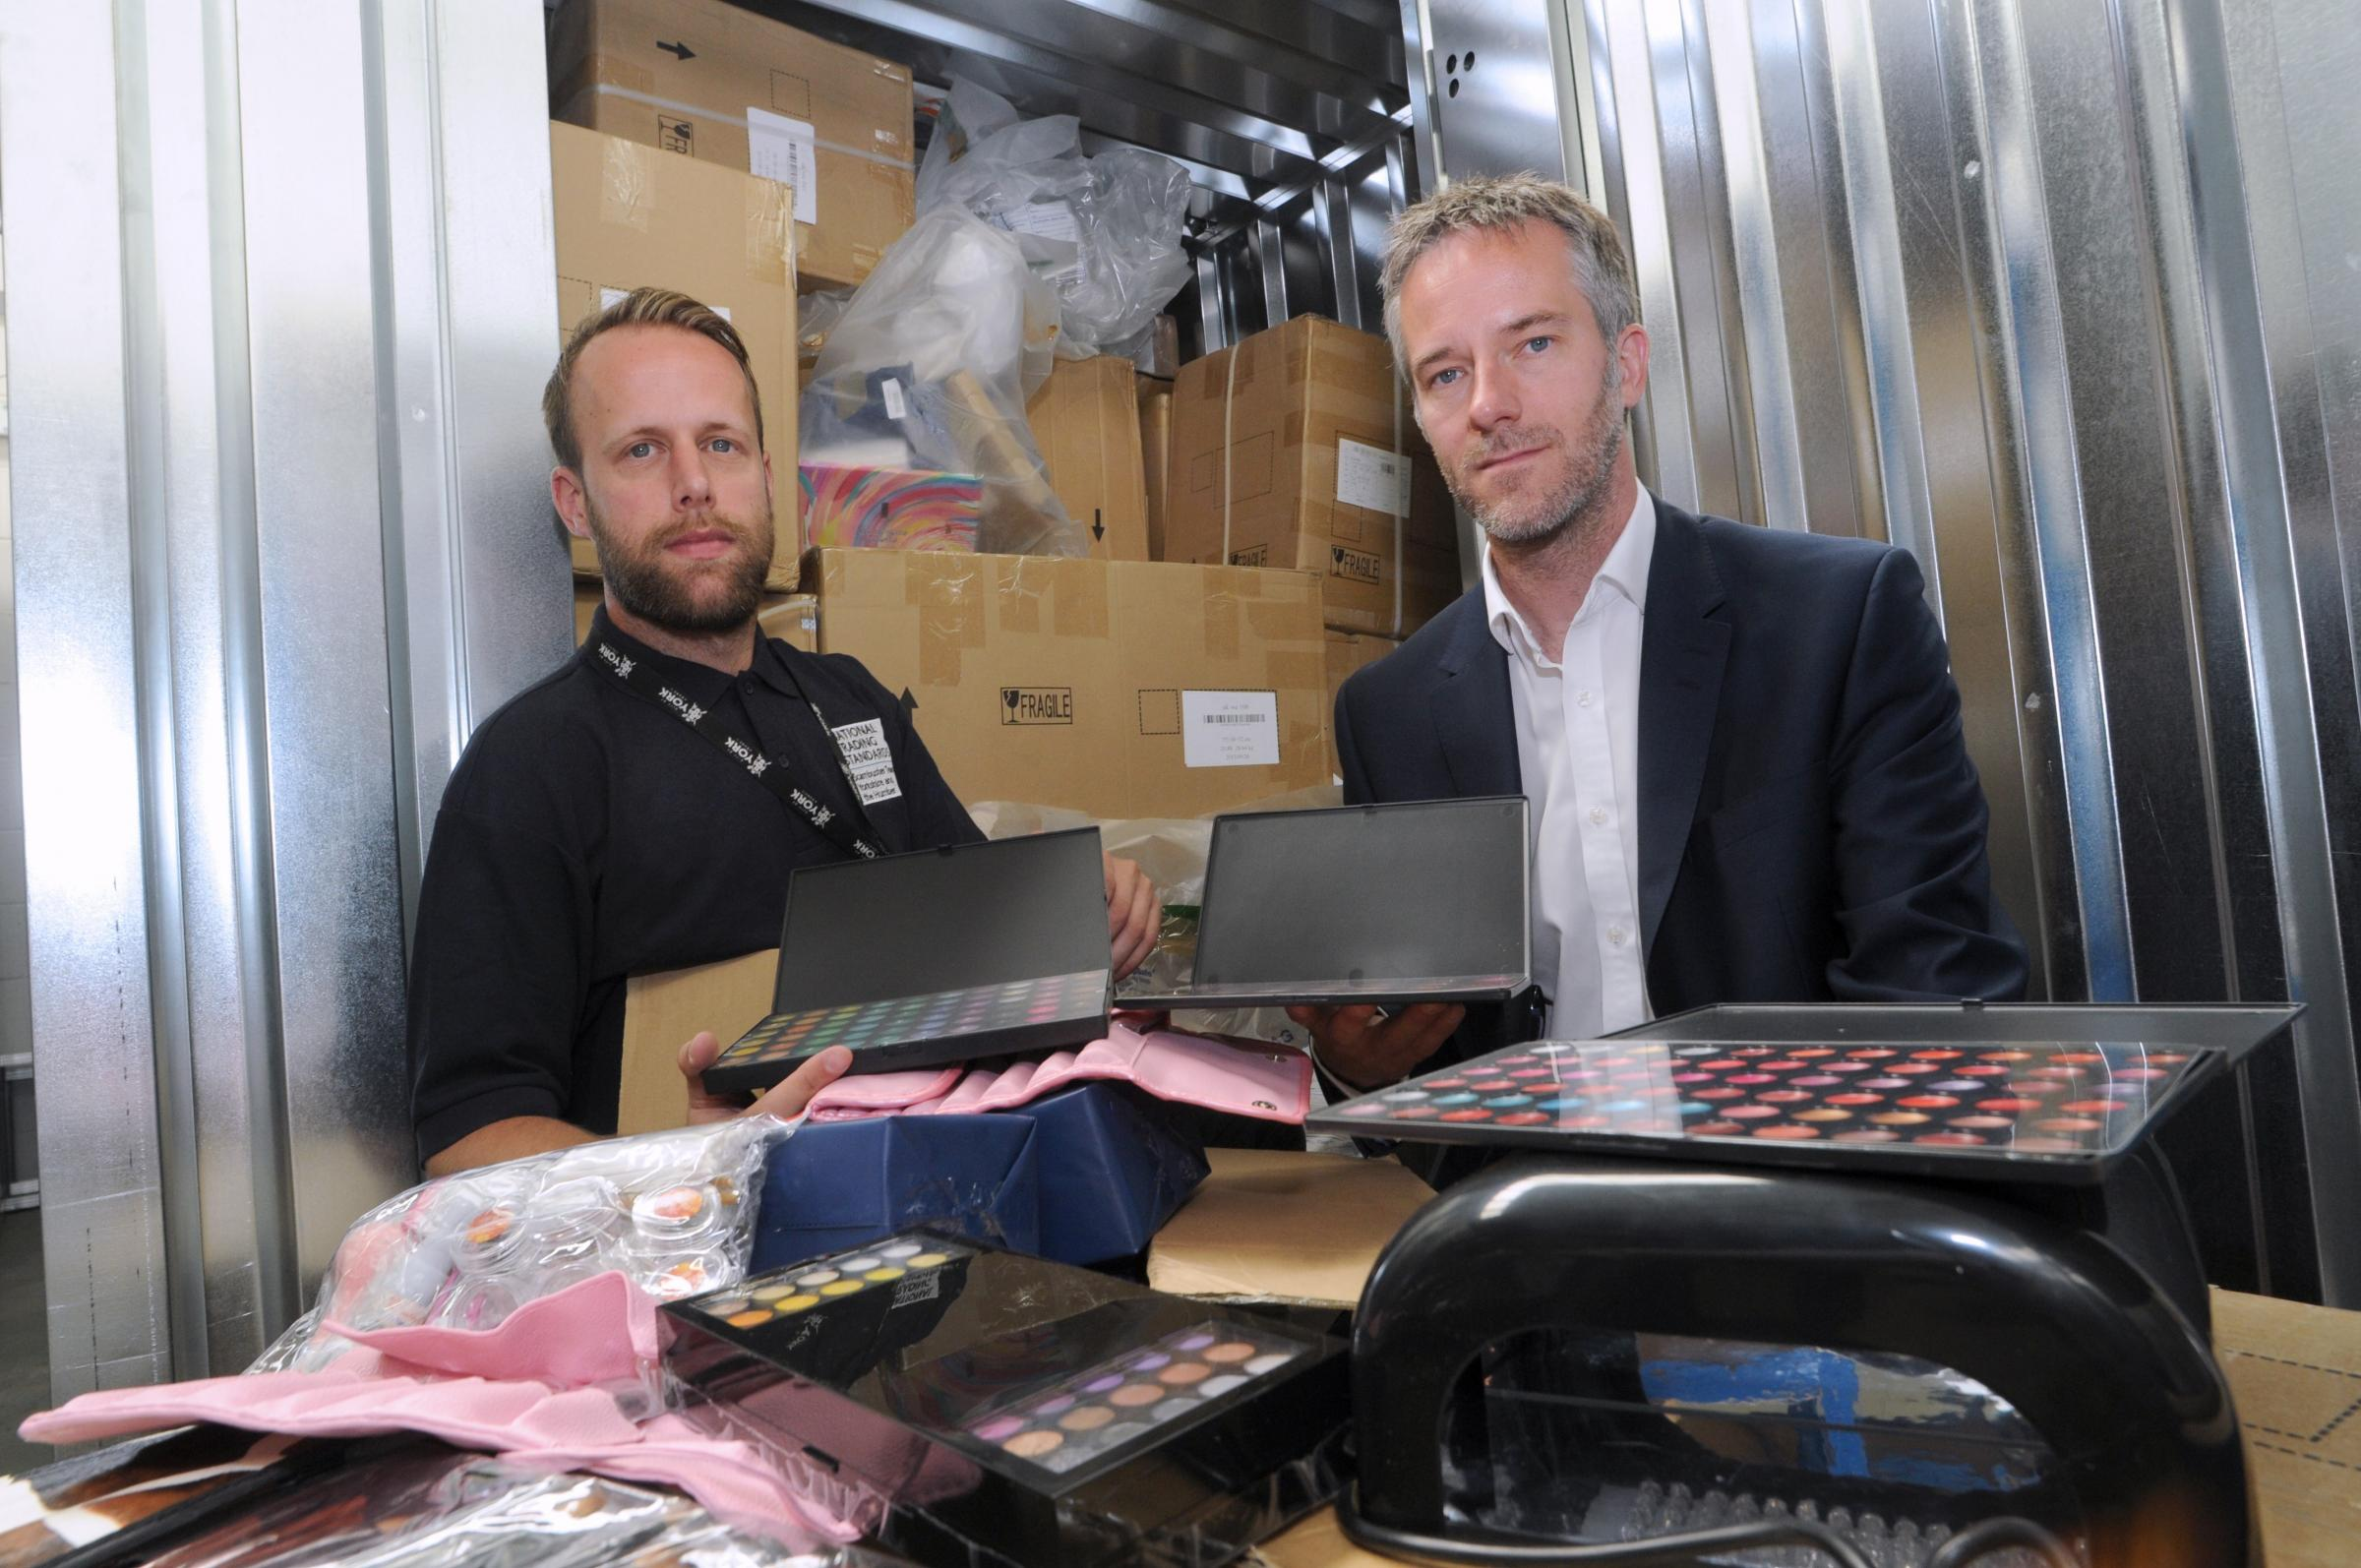 Richard Storey, left, and Mike Andrews, of the National Trading Standards eCrime Team, with a haul of fake make-up